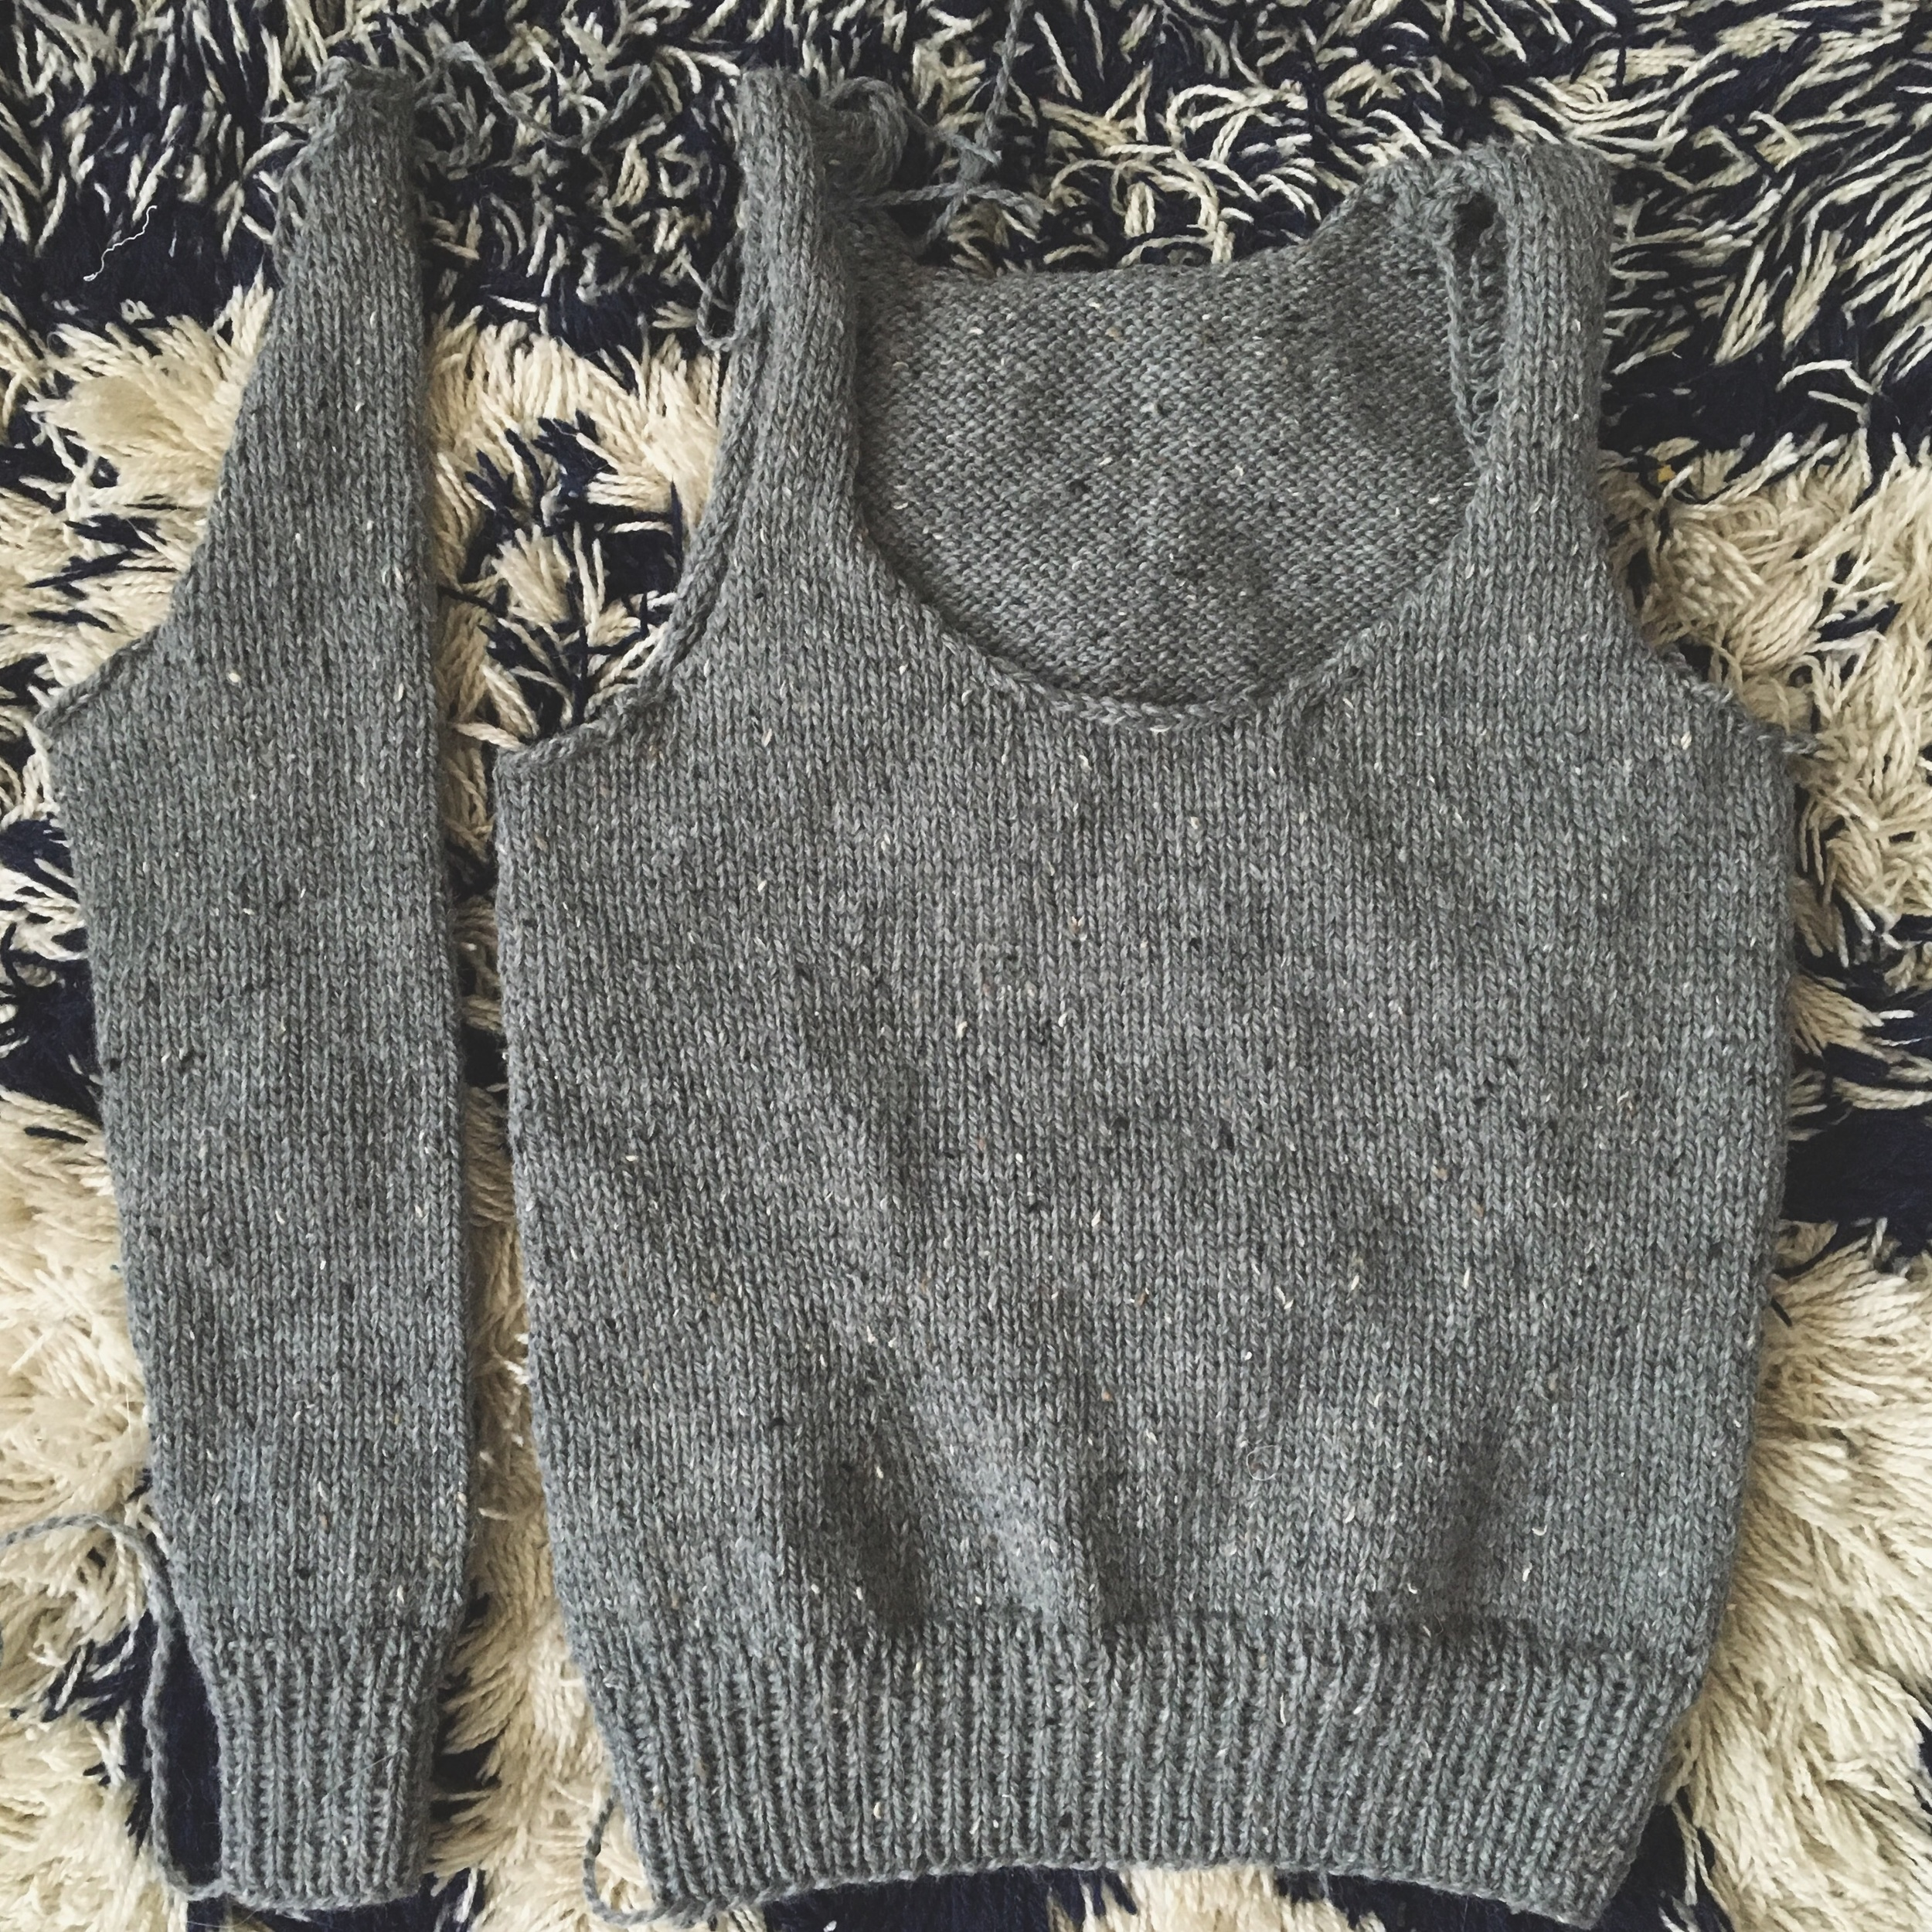 Body and 1 sleeve complete :: Eddy Sweater